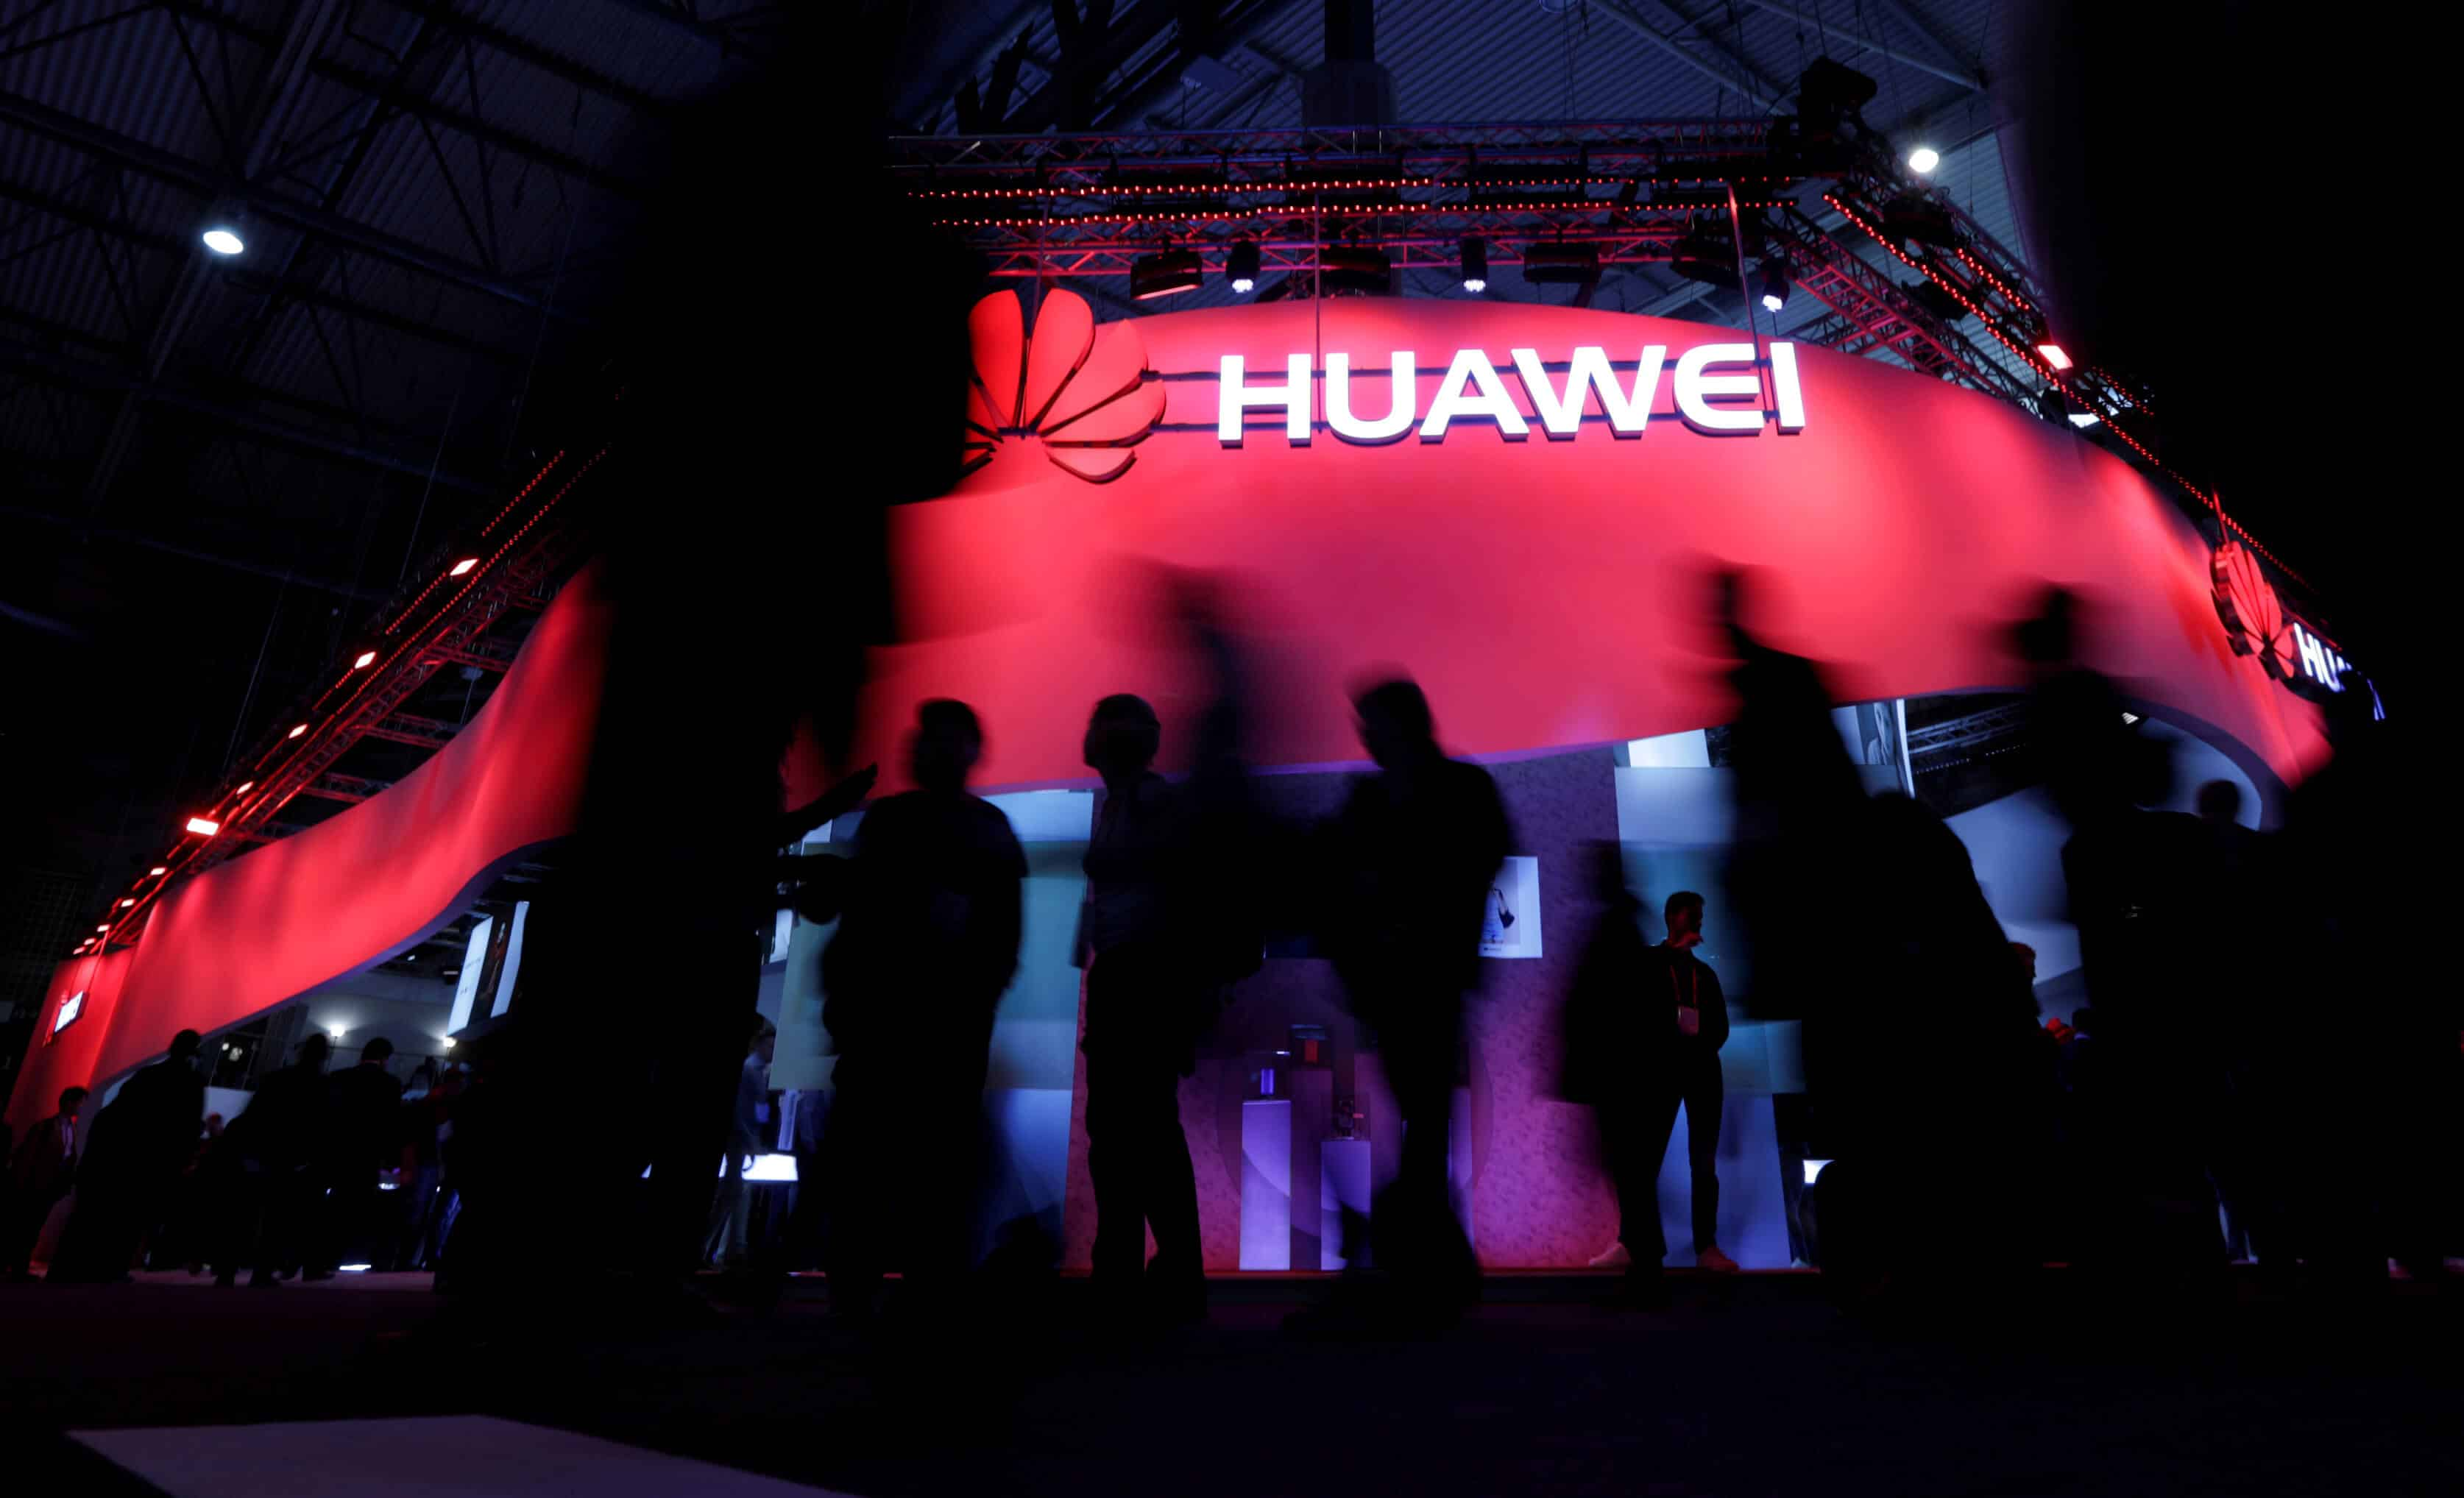 Huawei Says It will need 3-5 Years to Allay Britain's Security Fears